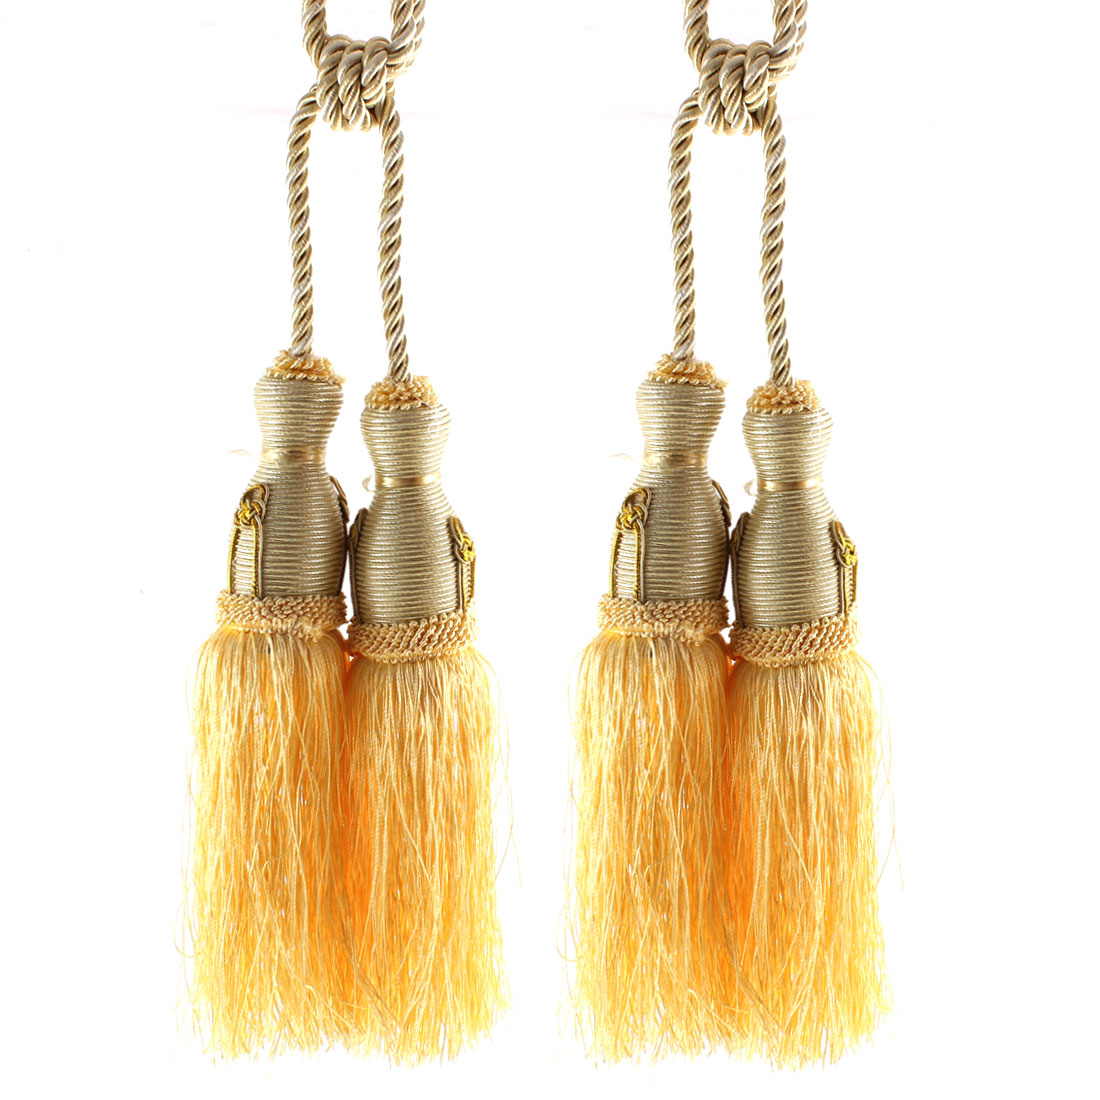 Yellow Pair Dual Rope Tassels Curtain Tieback Window Balcony Drape